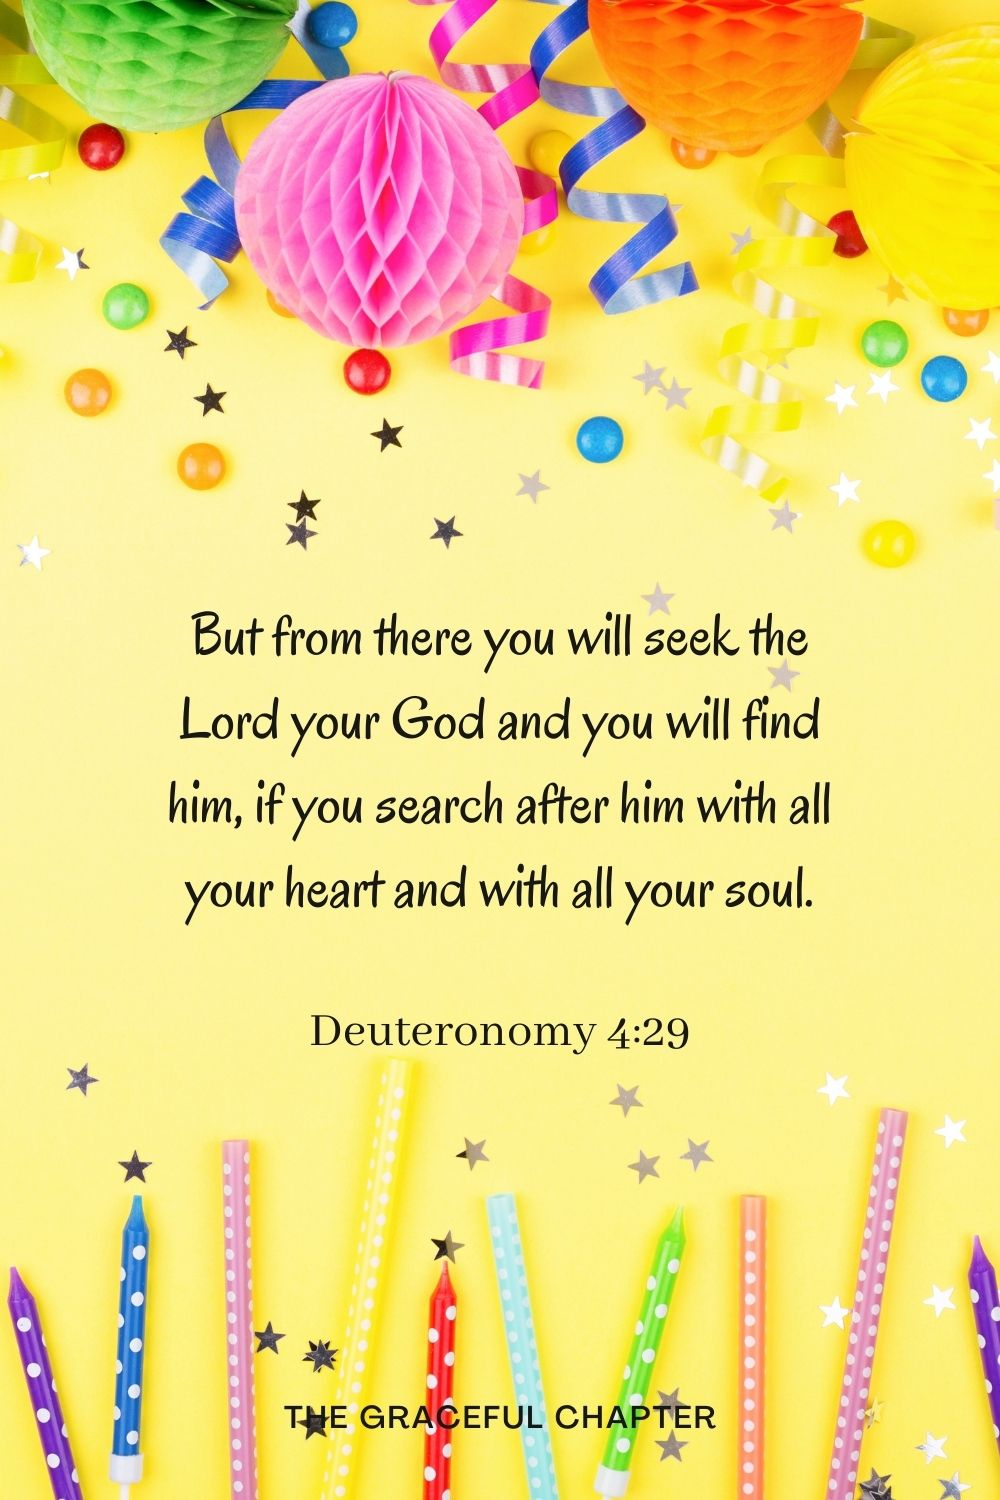 But from there you will seek the Lord your God and you will find him, if you search after him with all your heart and with all your soul. But from there you will seek the Lord your God and you will find him, if you search after him with all your heart and with all your soul. Deuteronomy 4:29